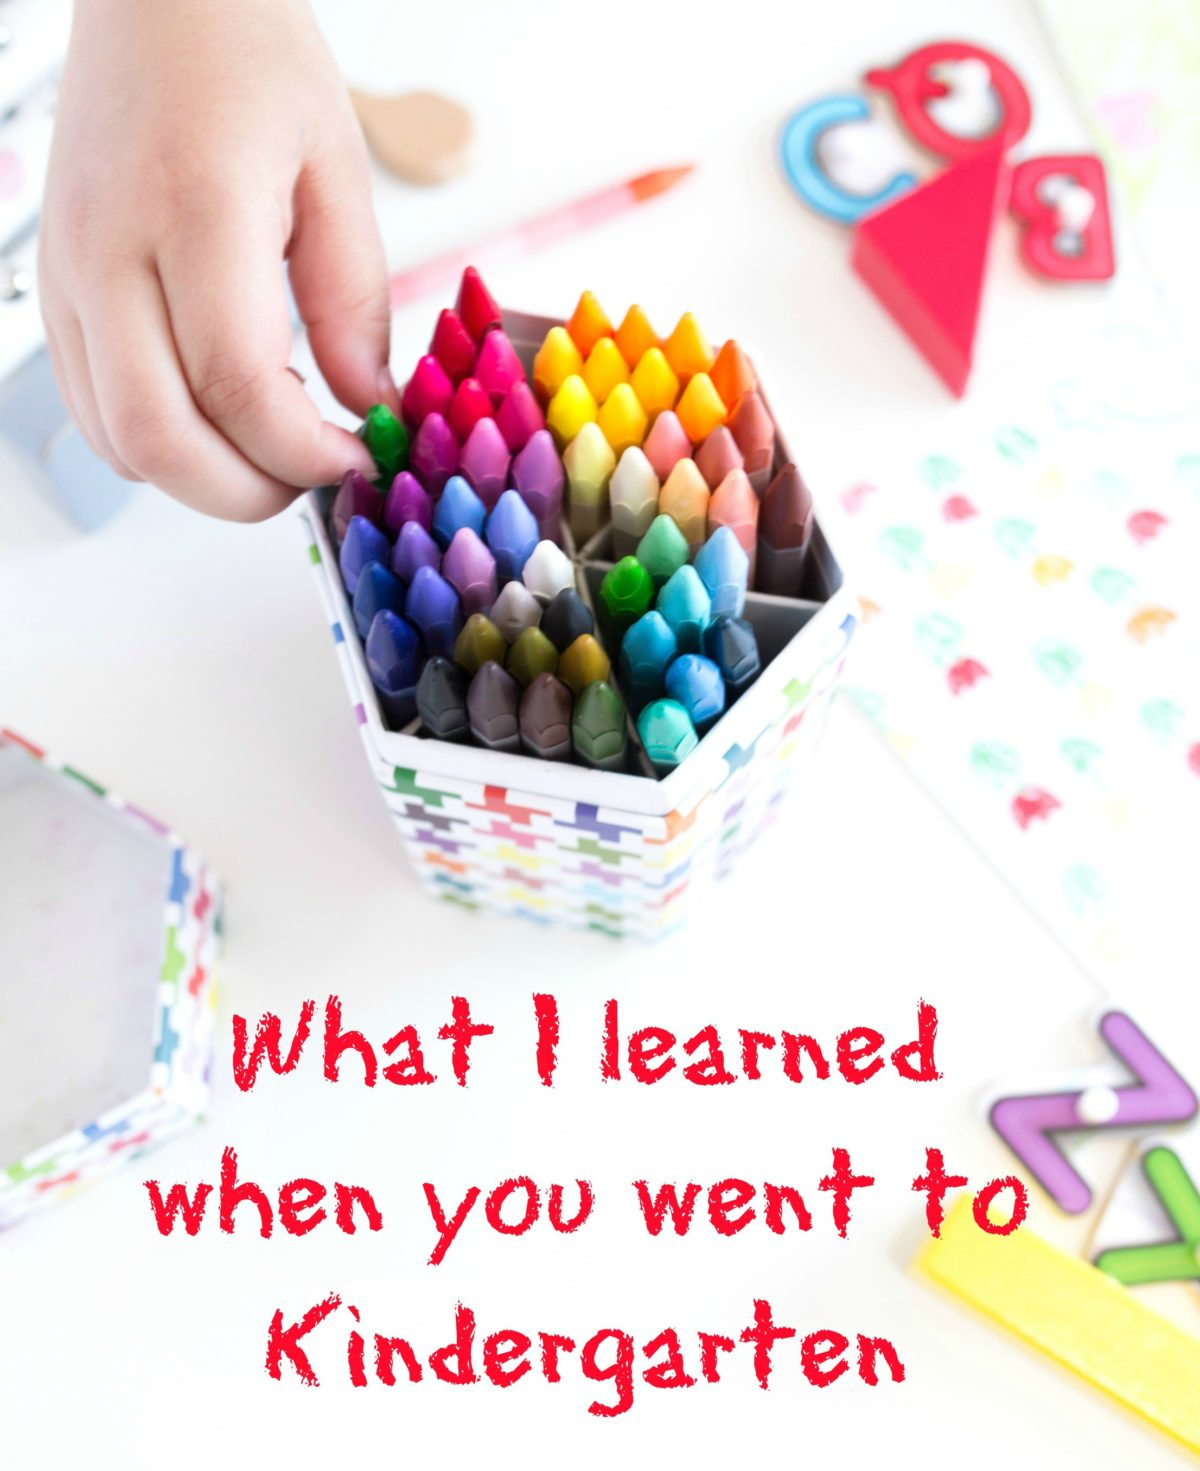 What I Learned When You Went to Kindergarten